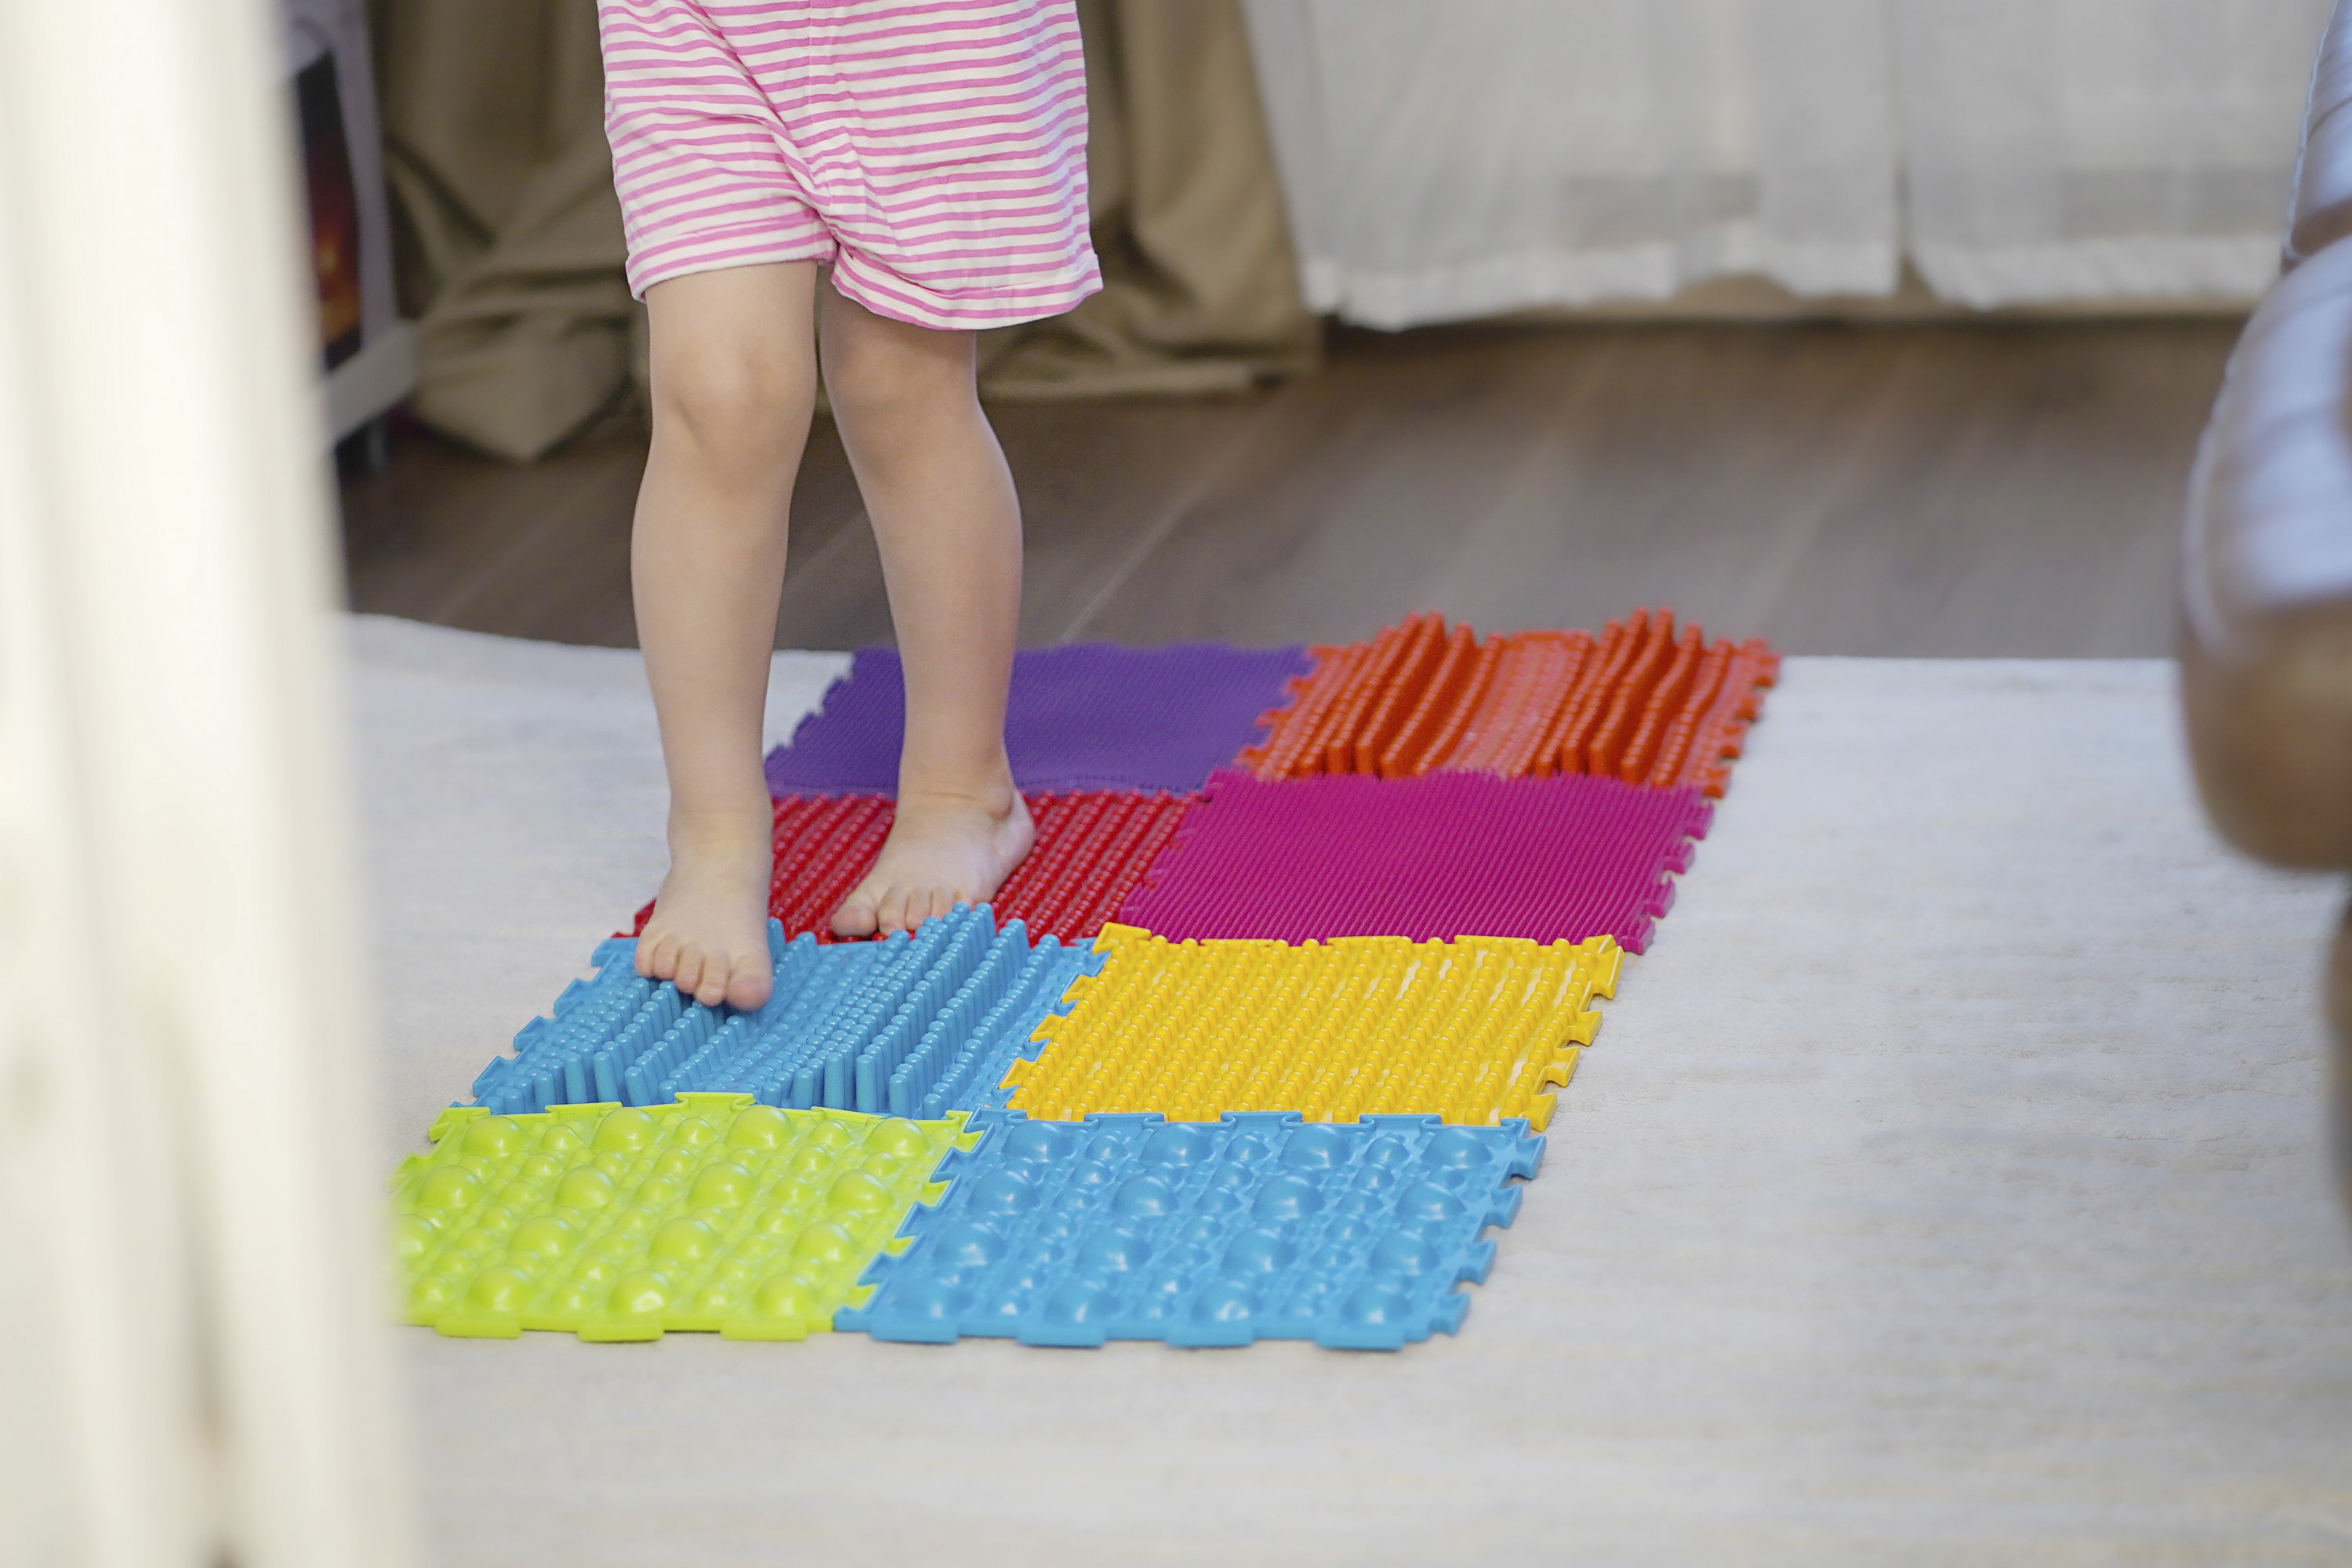 Orthopedic massage puzzle mats for development children example image 1